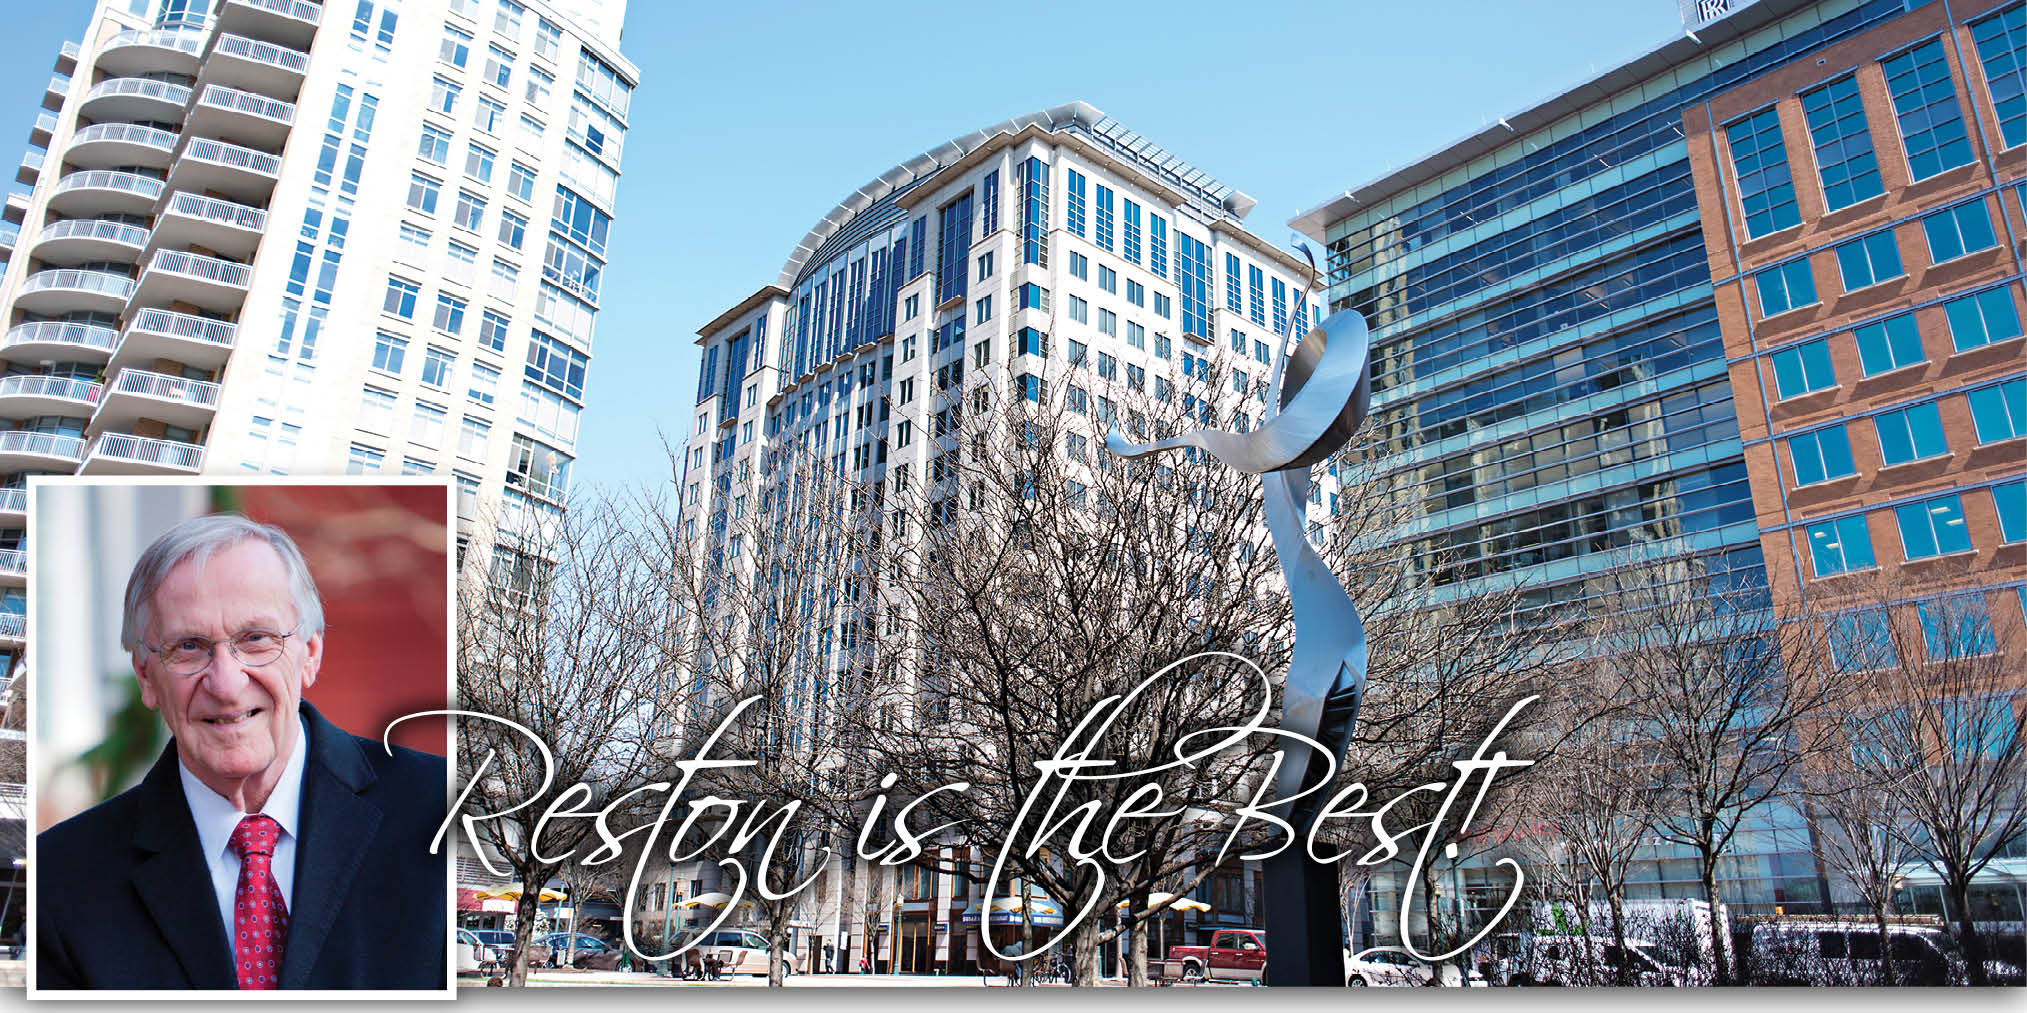 Reston is Best - Kenneth Plum